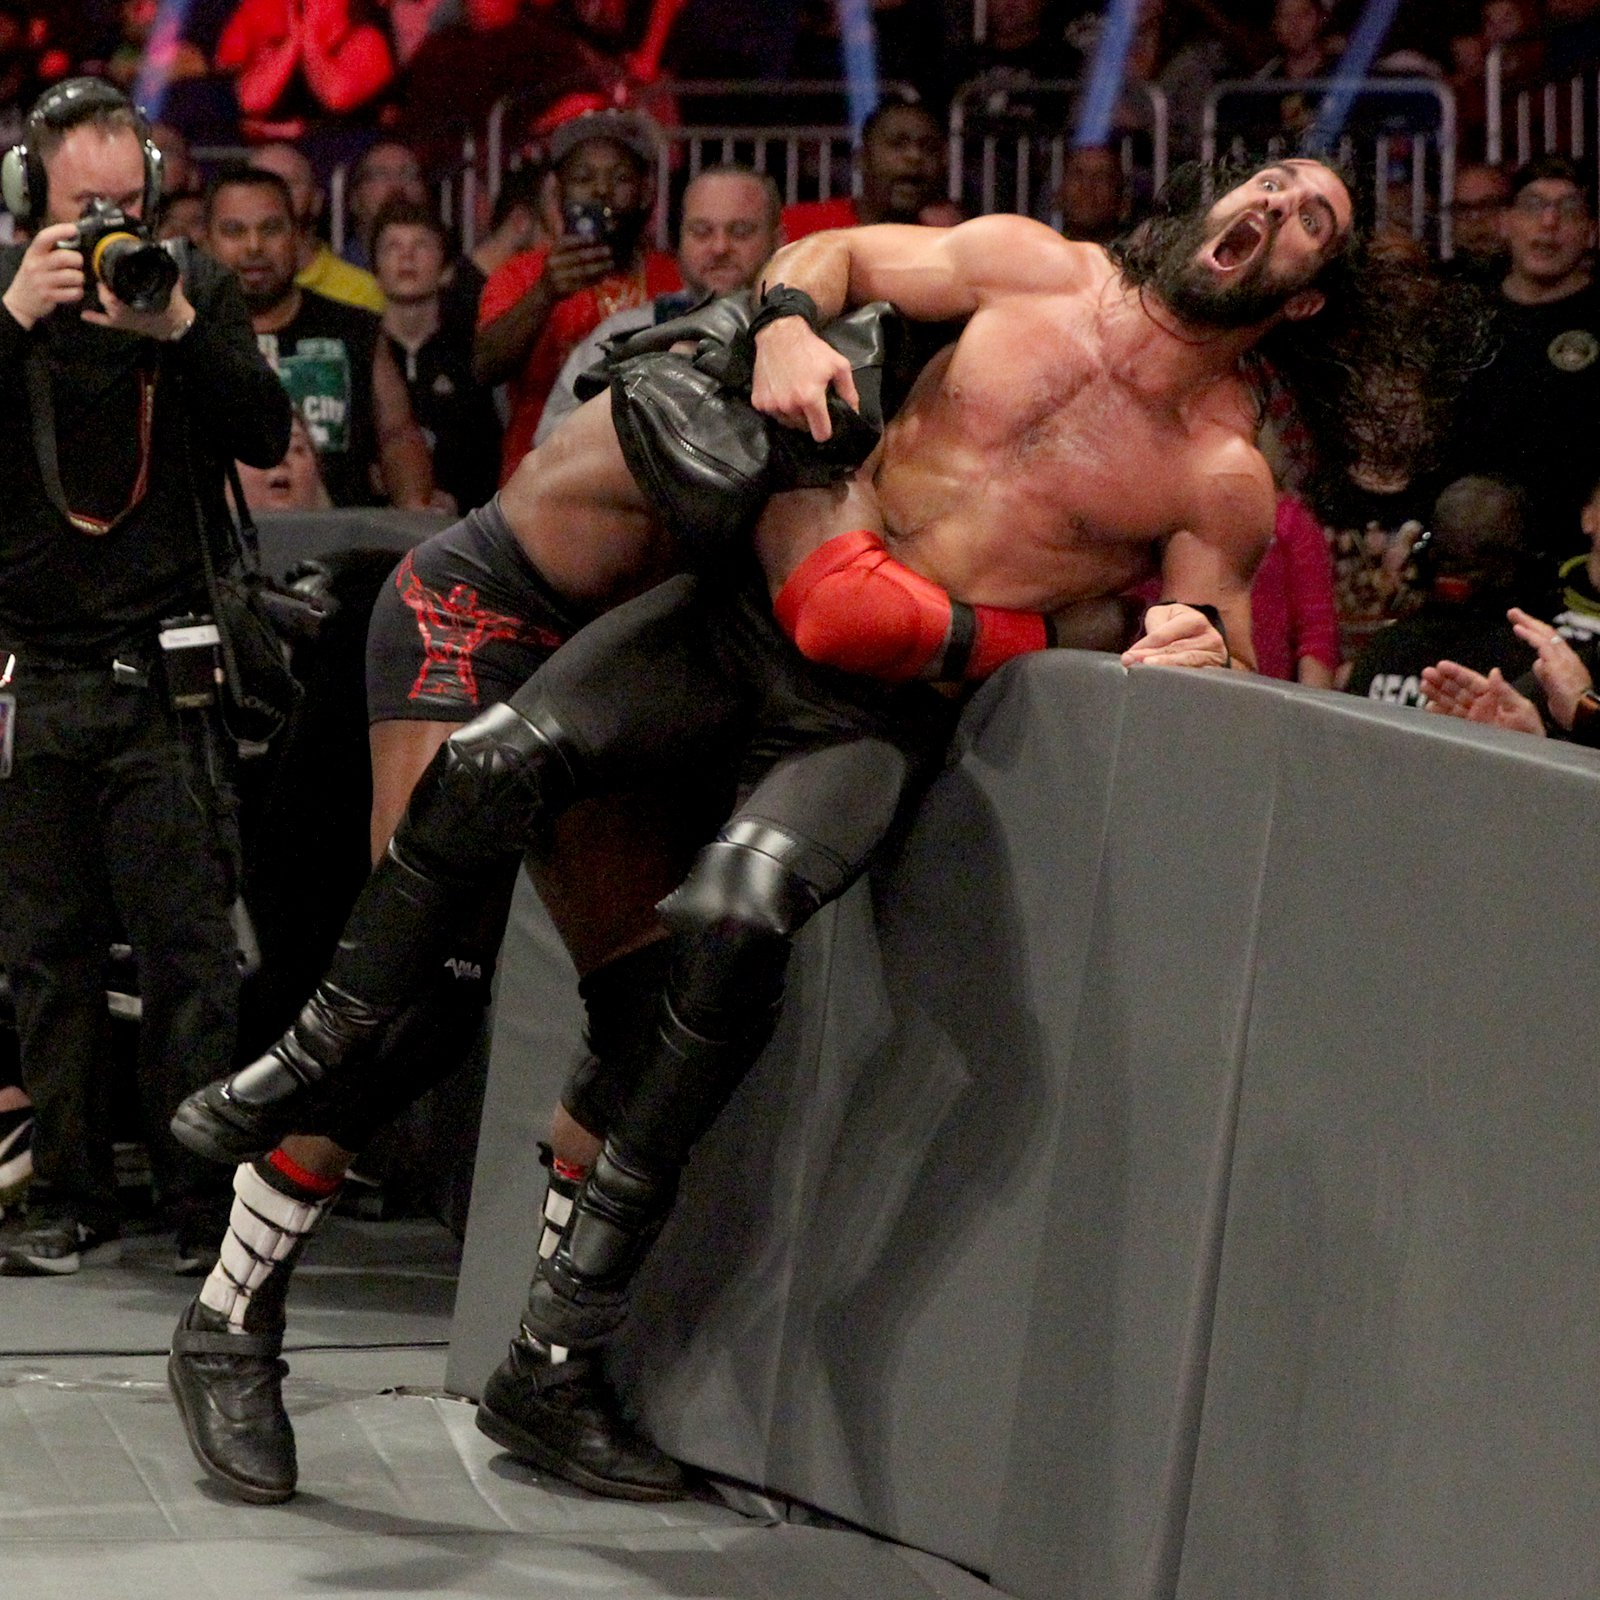 Lashley drives Rollins into the barricade...